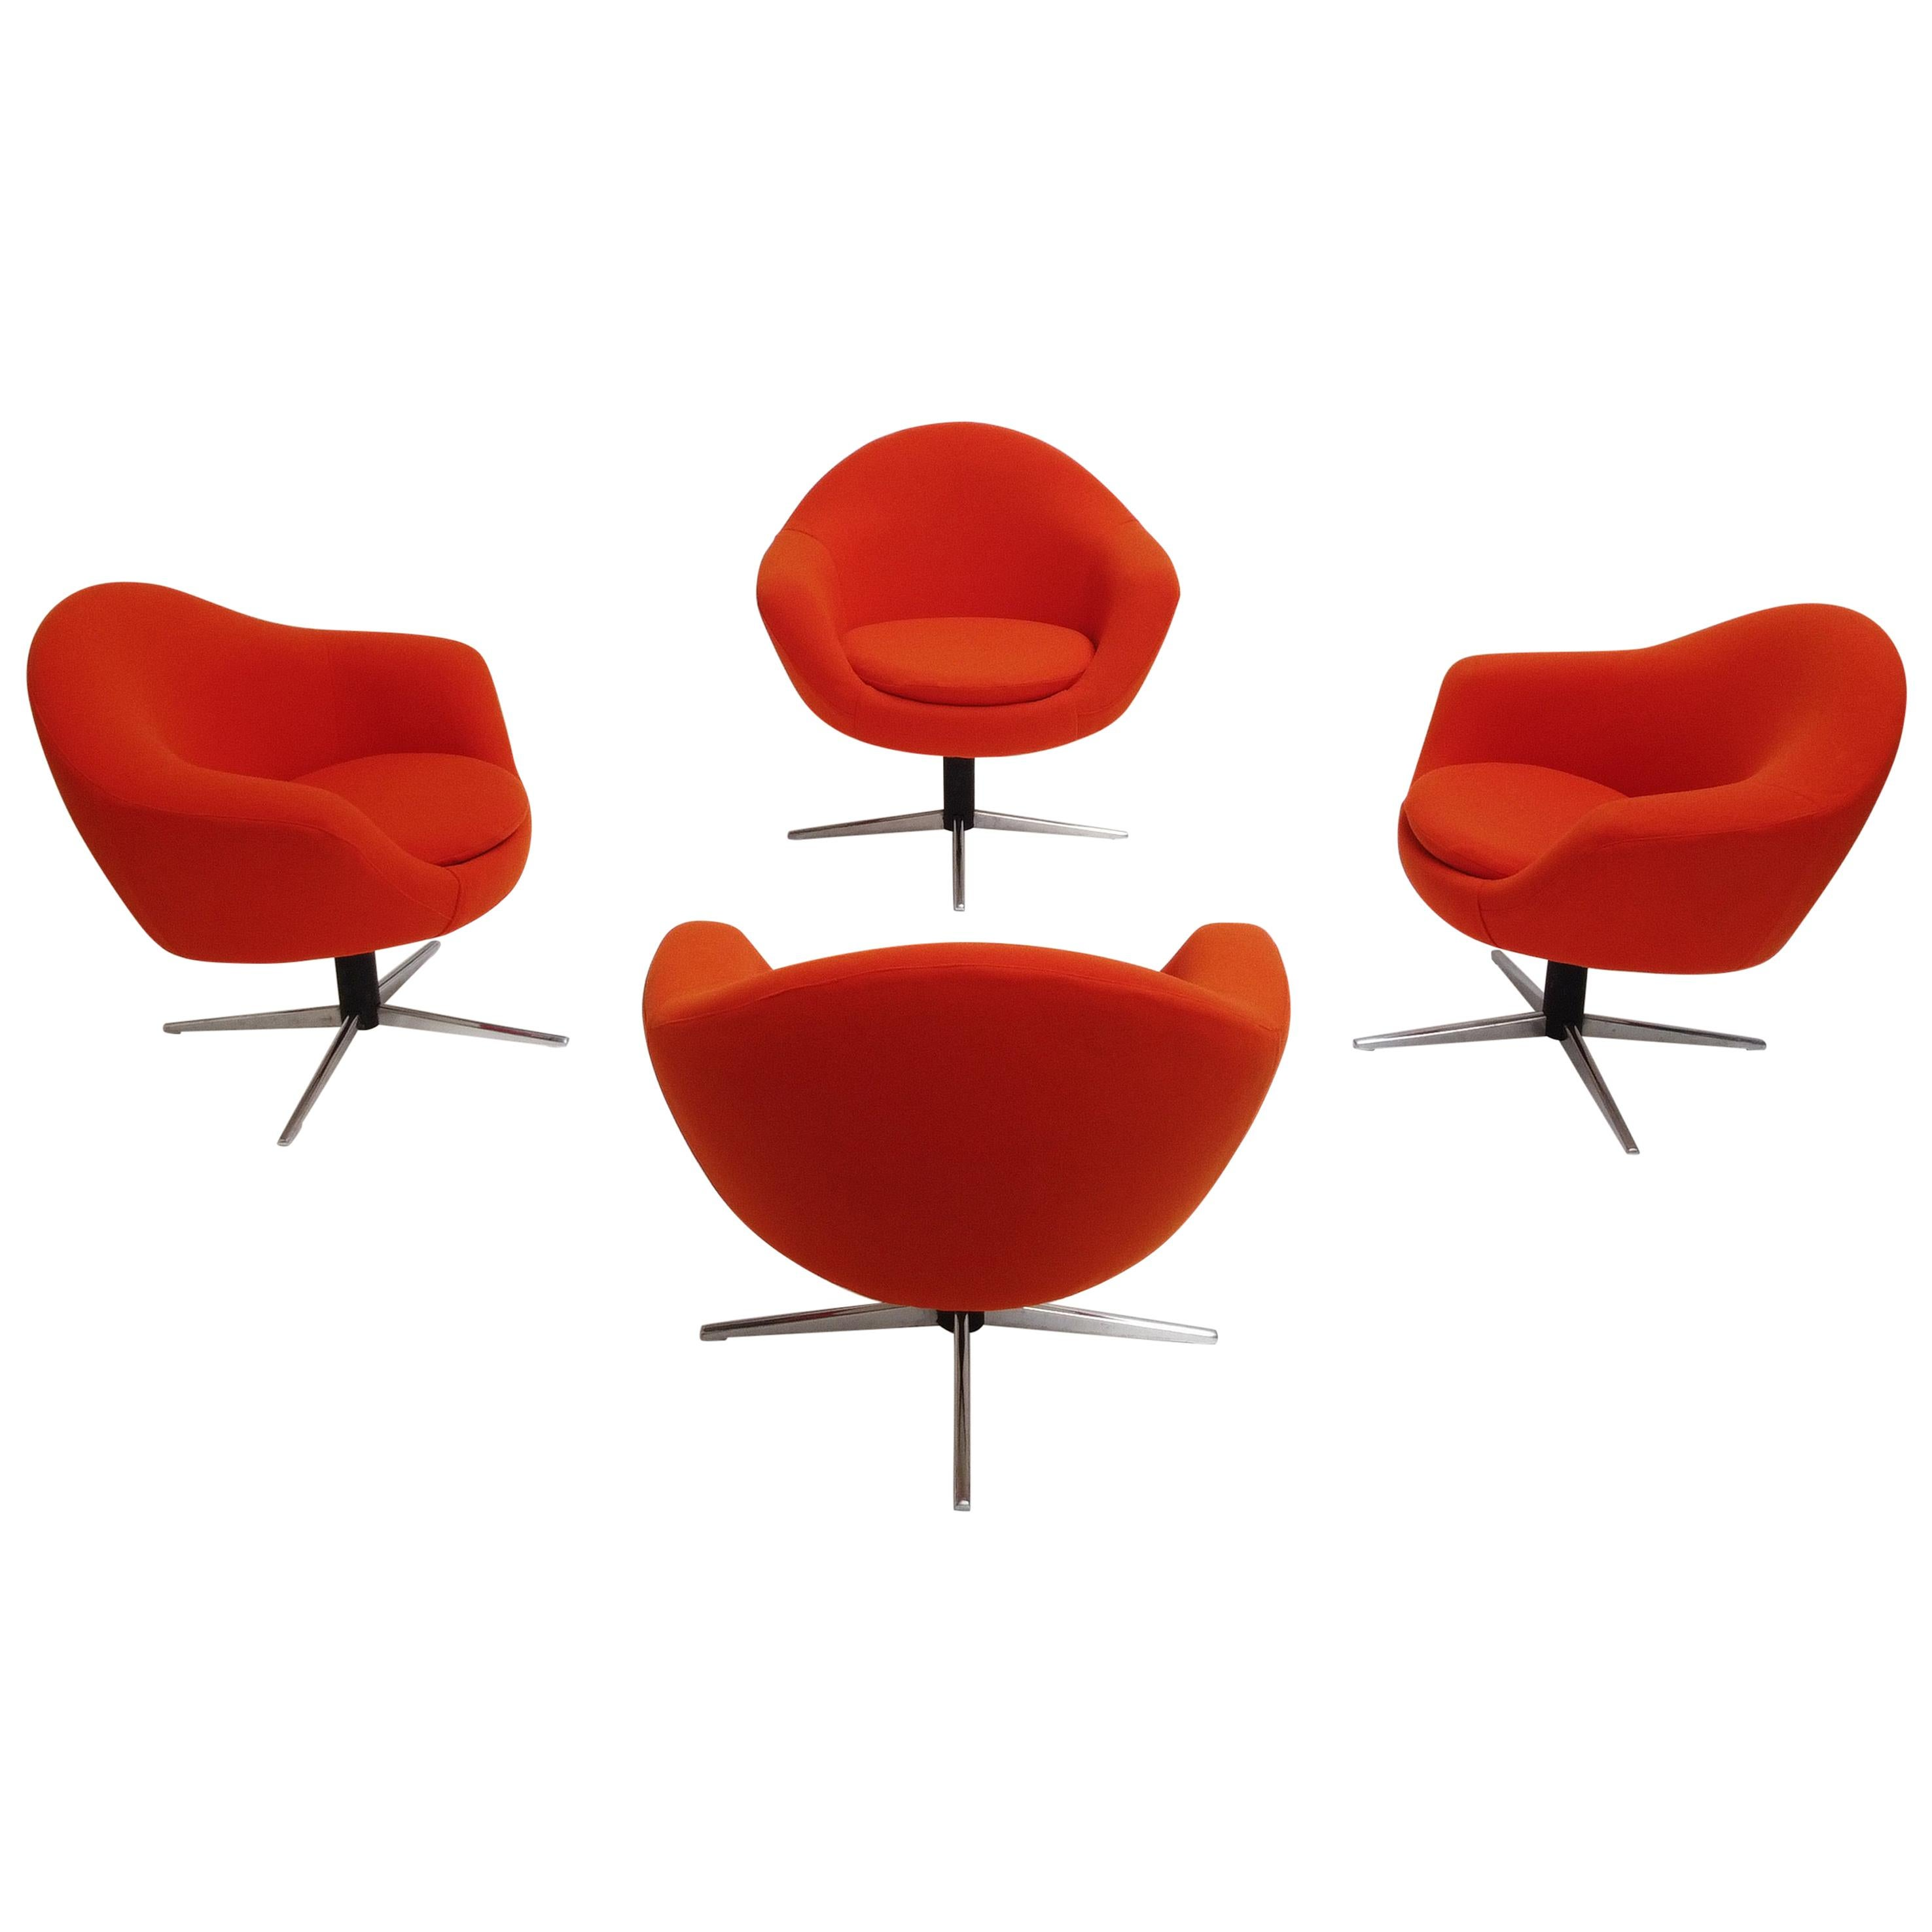 1960s Hungarian Space Age Swiveling Lounge Chairs New Orange Stretch Fabric